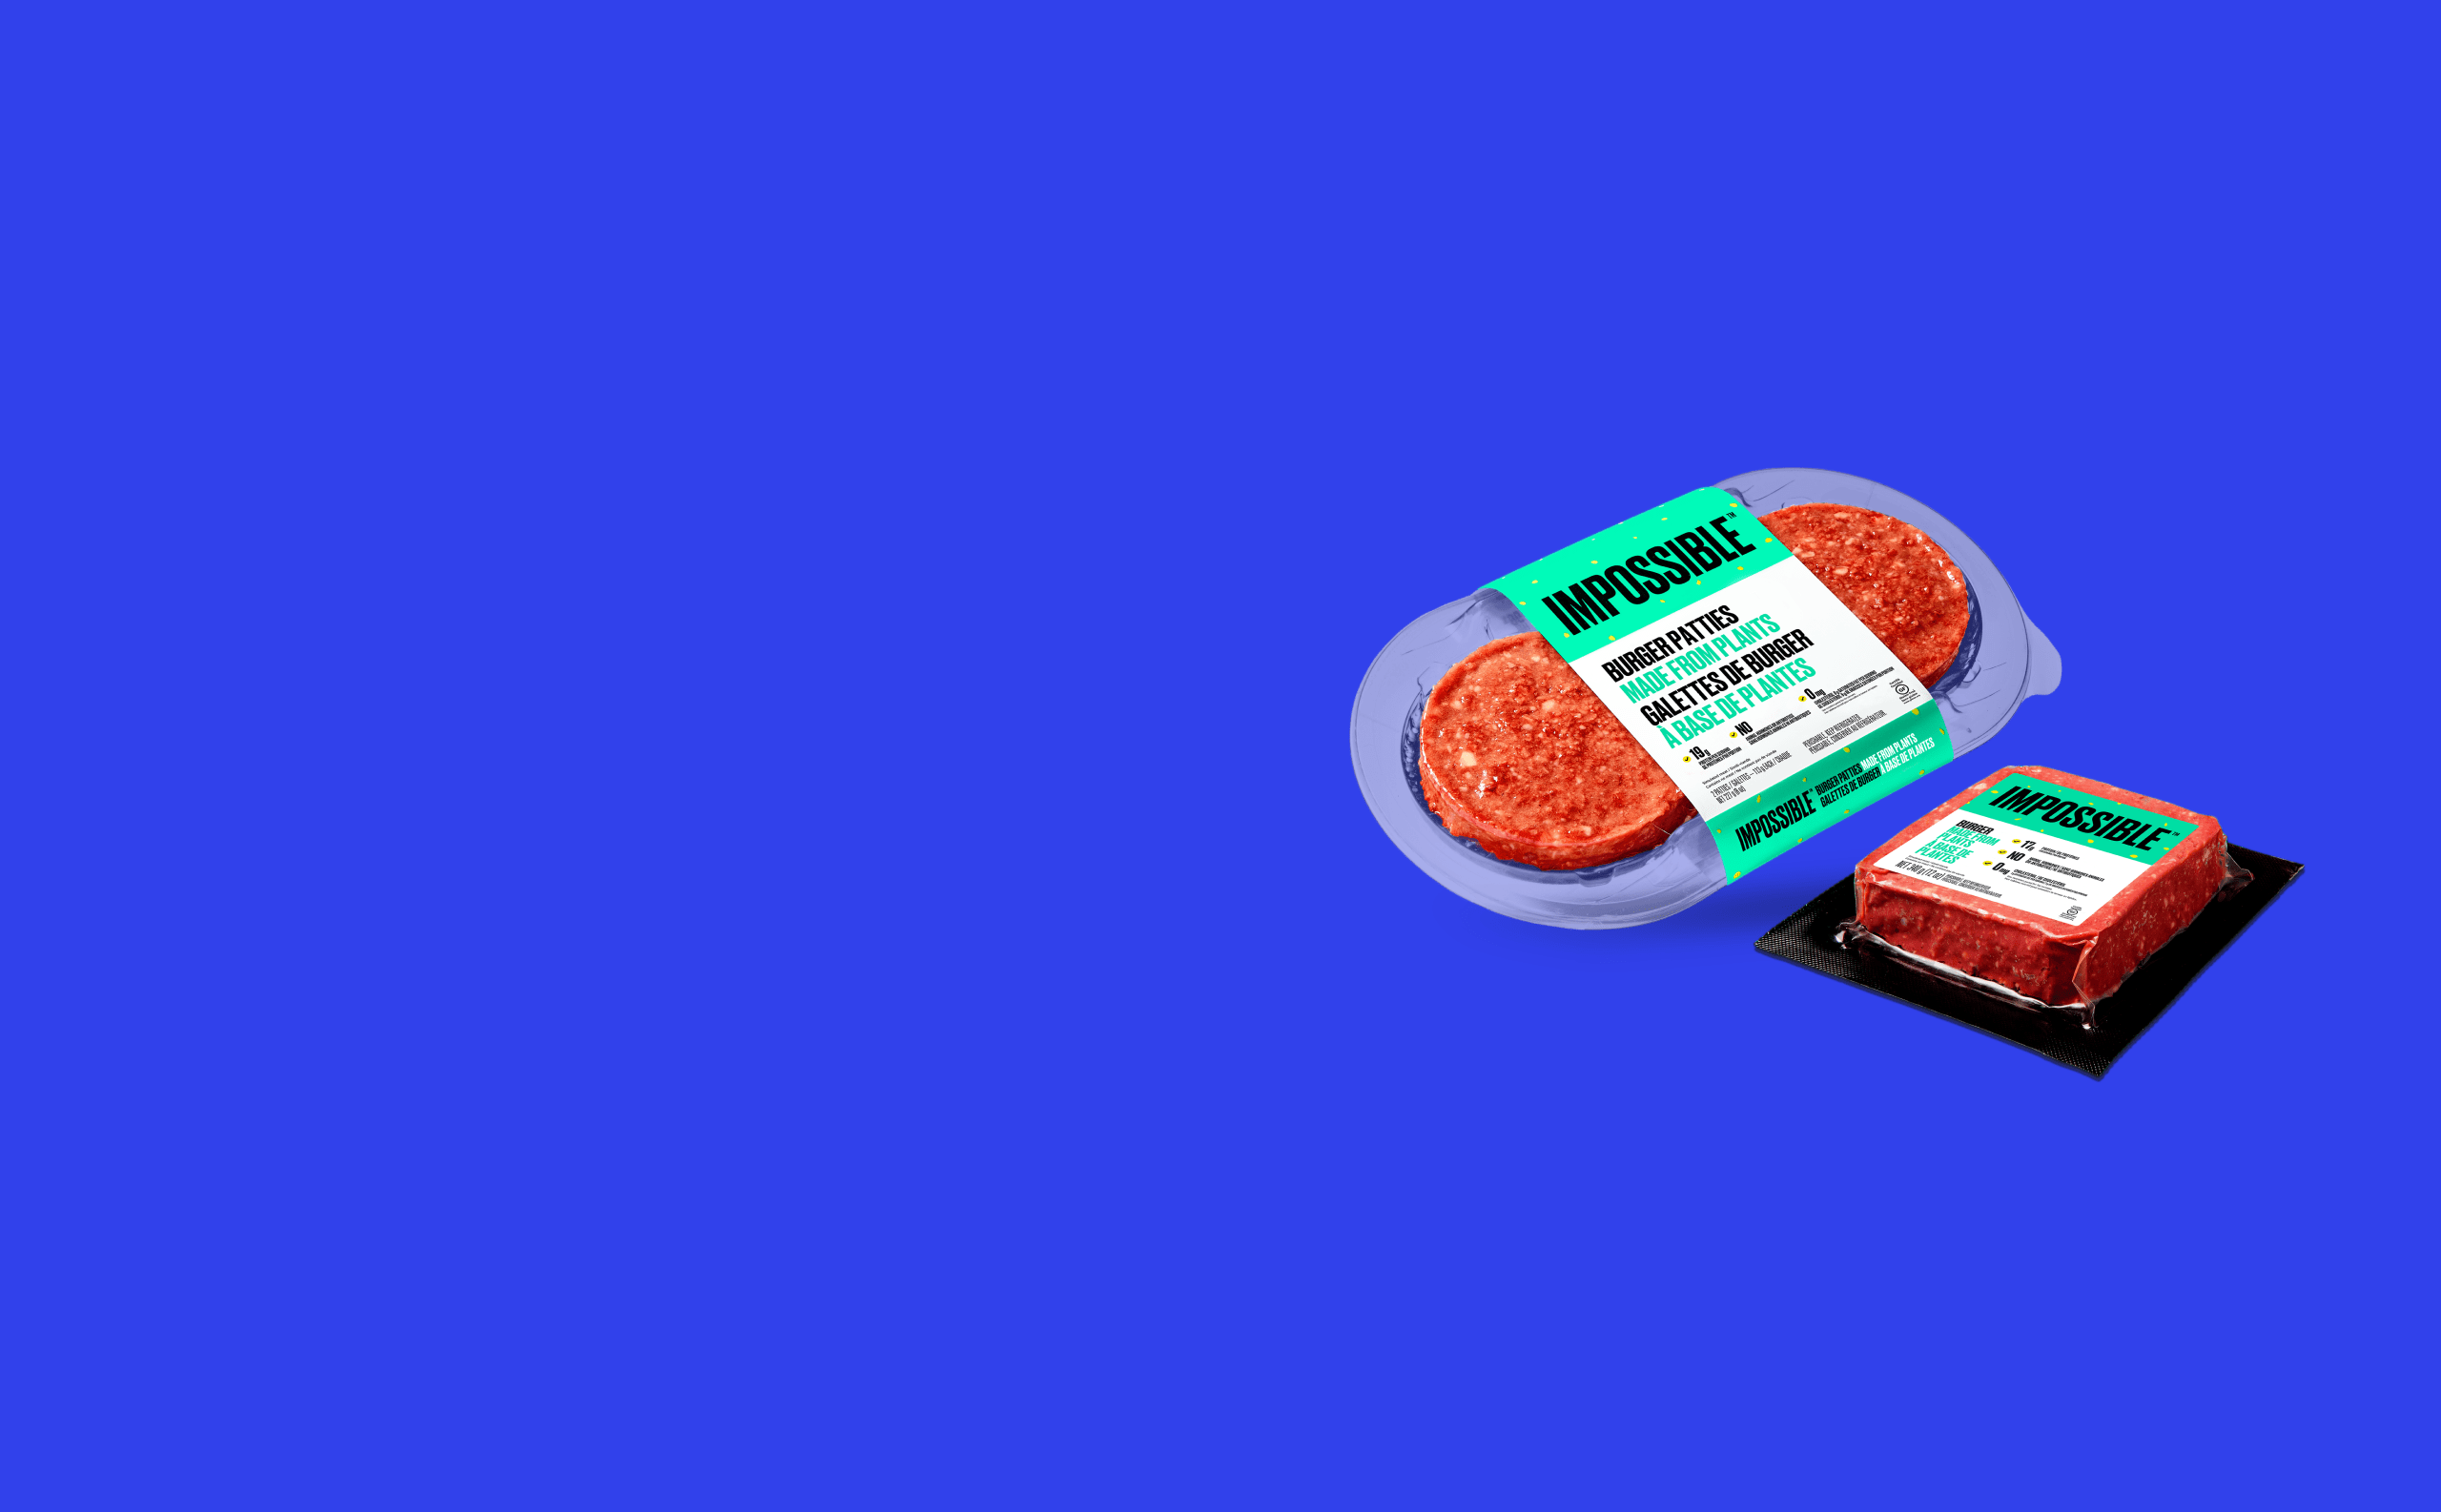 Impossible Burger Canada patties and 12 oz brick on blue background